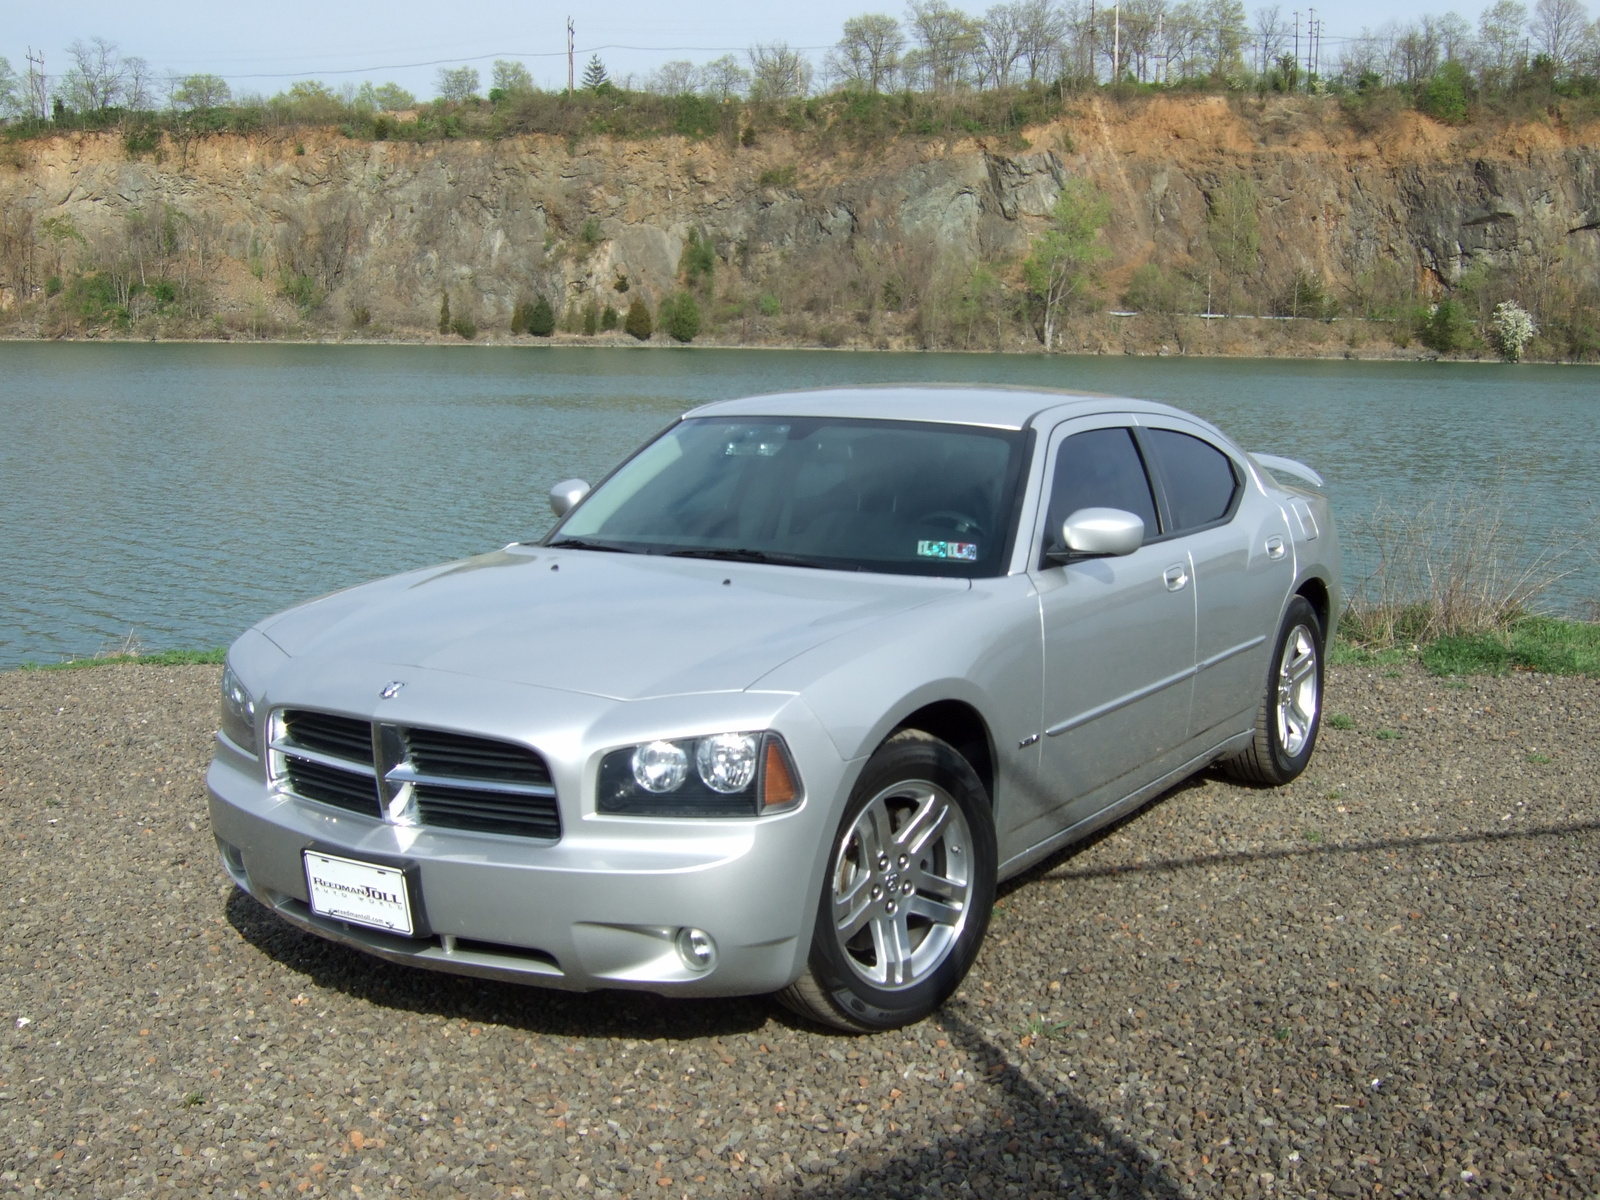 2007 dodge charger pictures to pin on pinterest